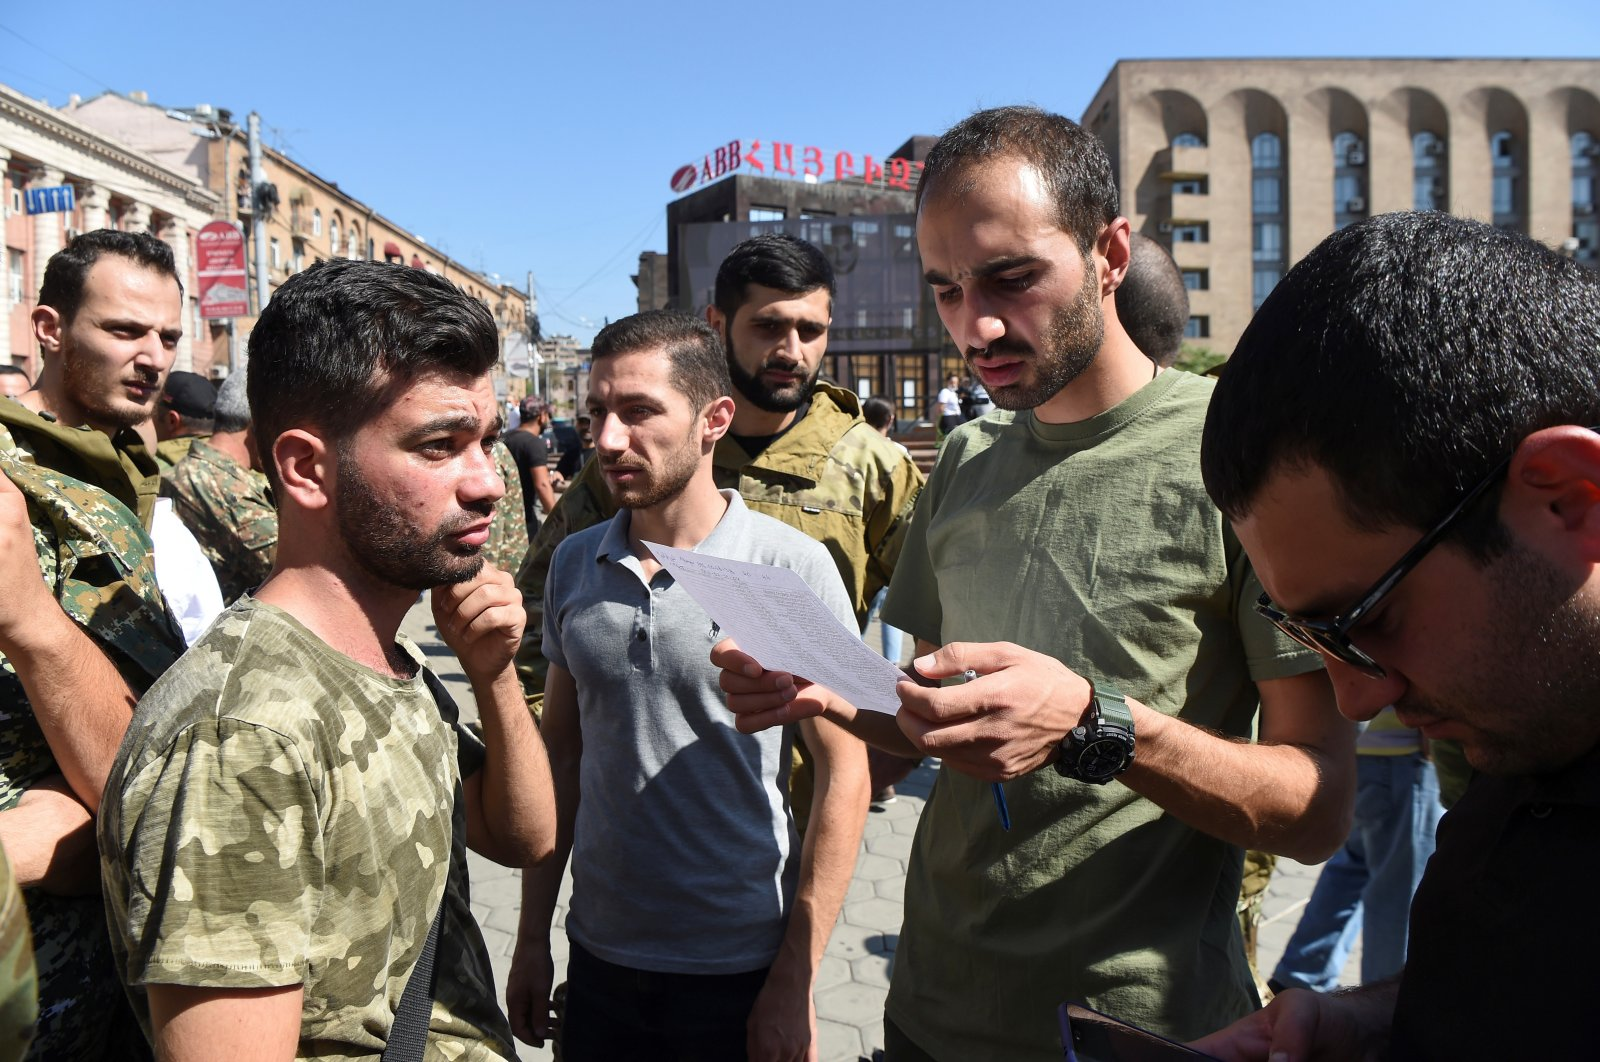 People attend a meeting to recruit military volunteers after Armenian authorities declared martial law and mobilized its male population following clashes with Azerbaijan over the breakaway Nagorno-Karabakh region in Yerevan, Armenia, Sept. 27, 2020. (REUTERS)